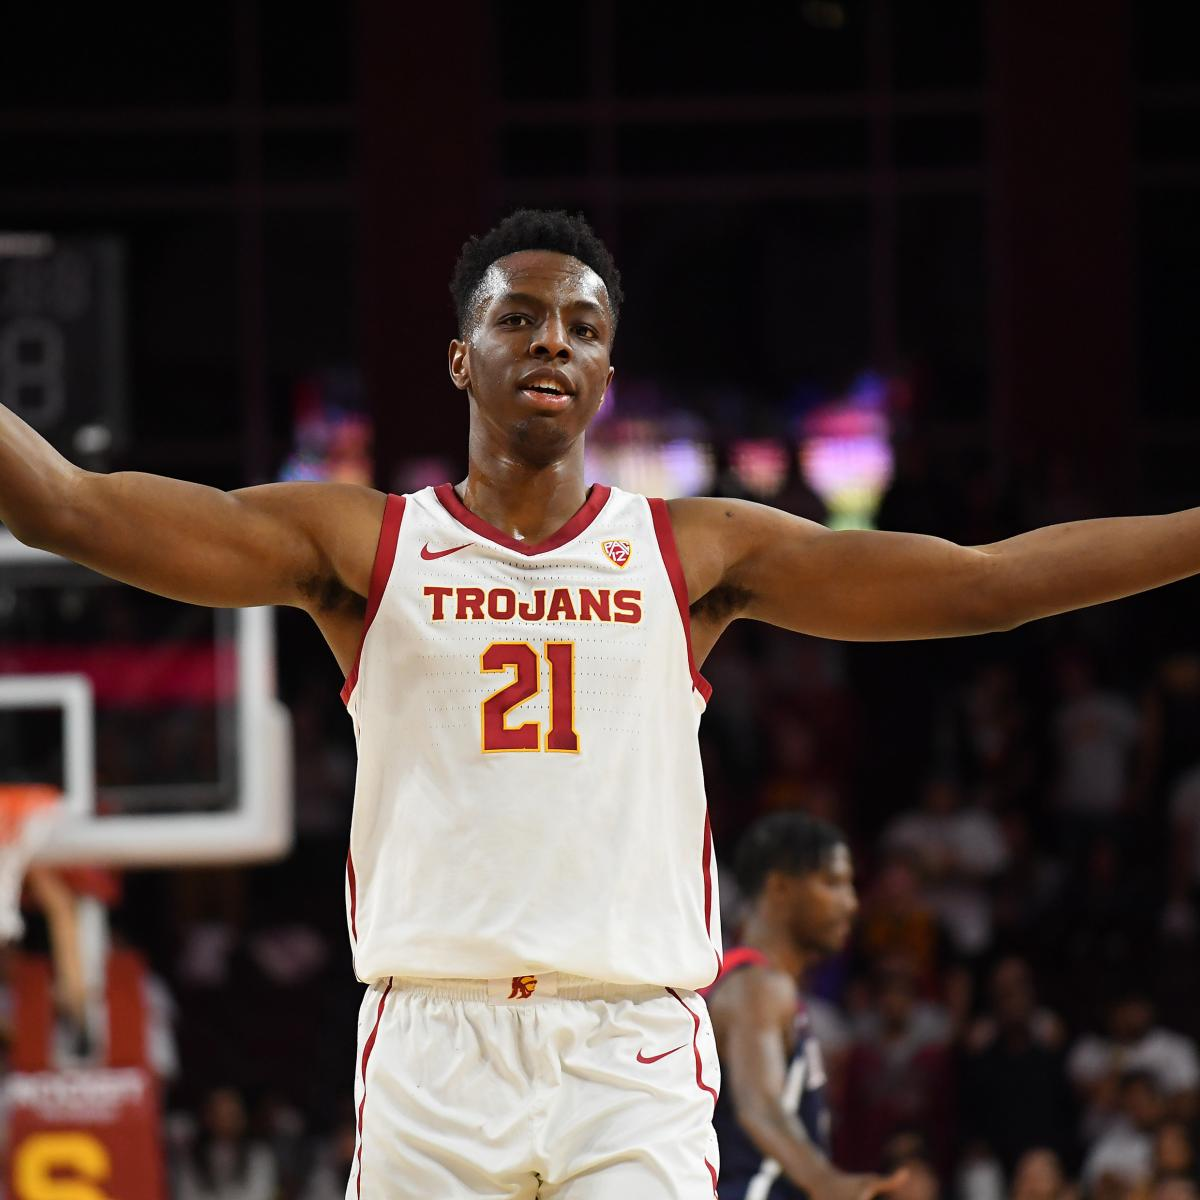 2020 NBA Draft: Projecting Top Prospect Fits for Warriors, Knicks and More Teams